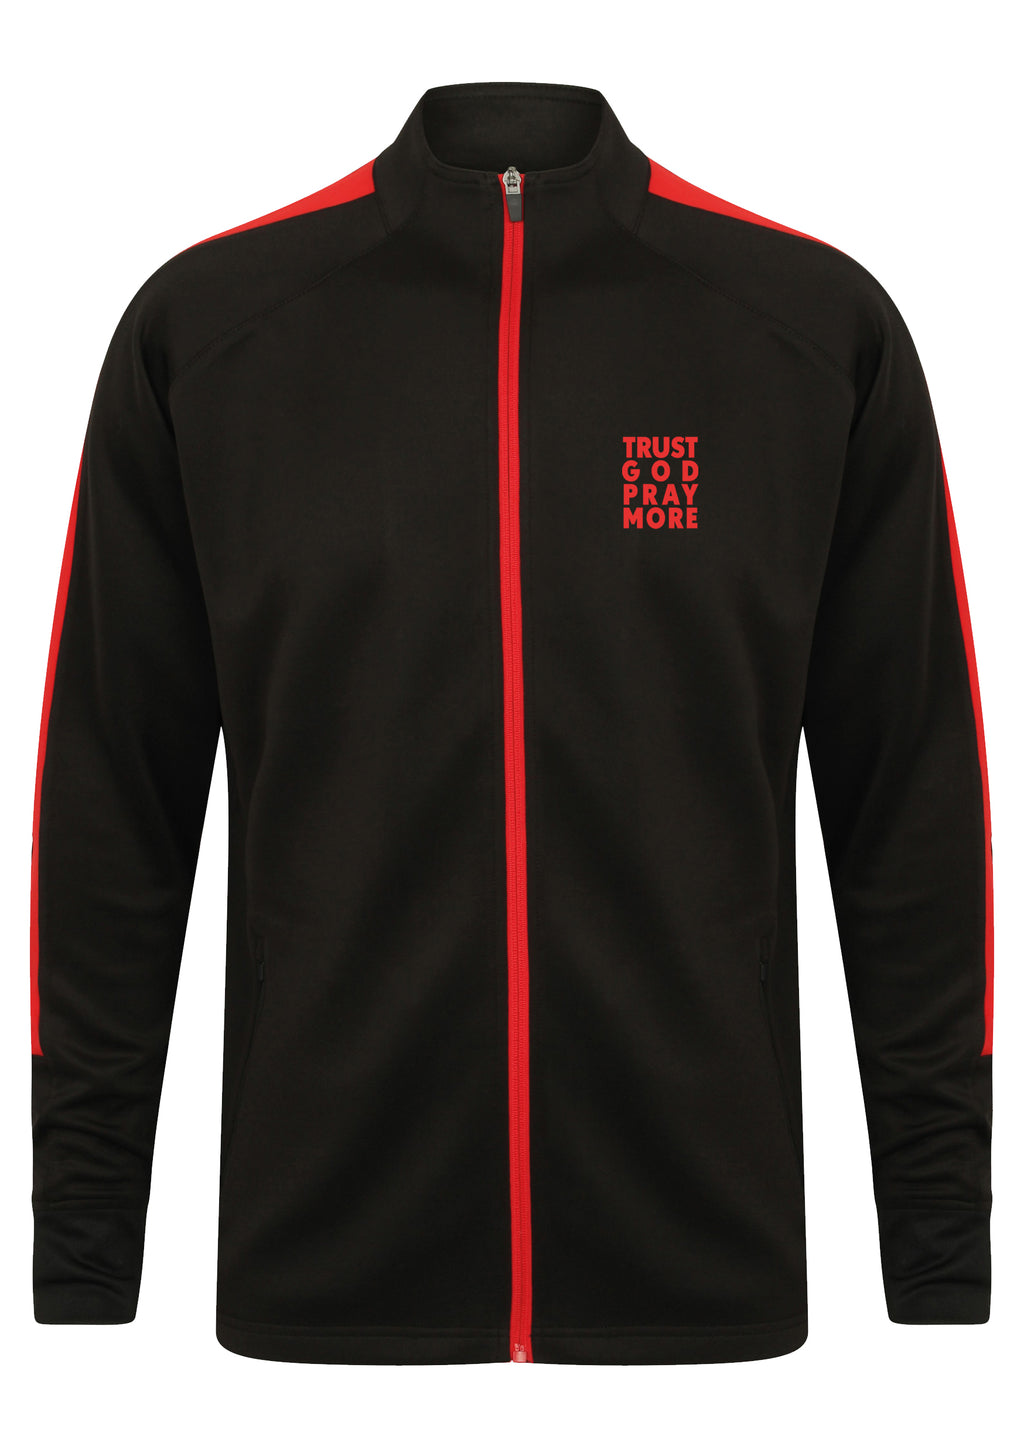 TRUST GOD PRAY MORE Unisex Knitted tracksuit Jacket (Red)